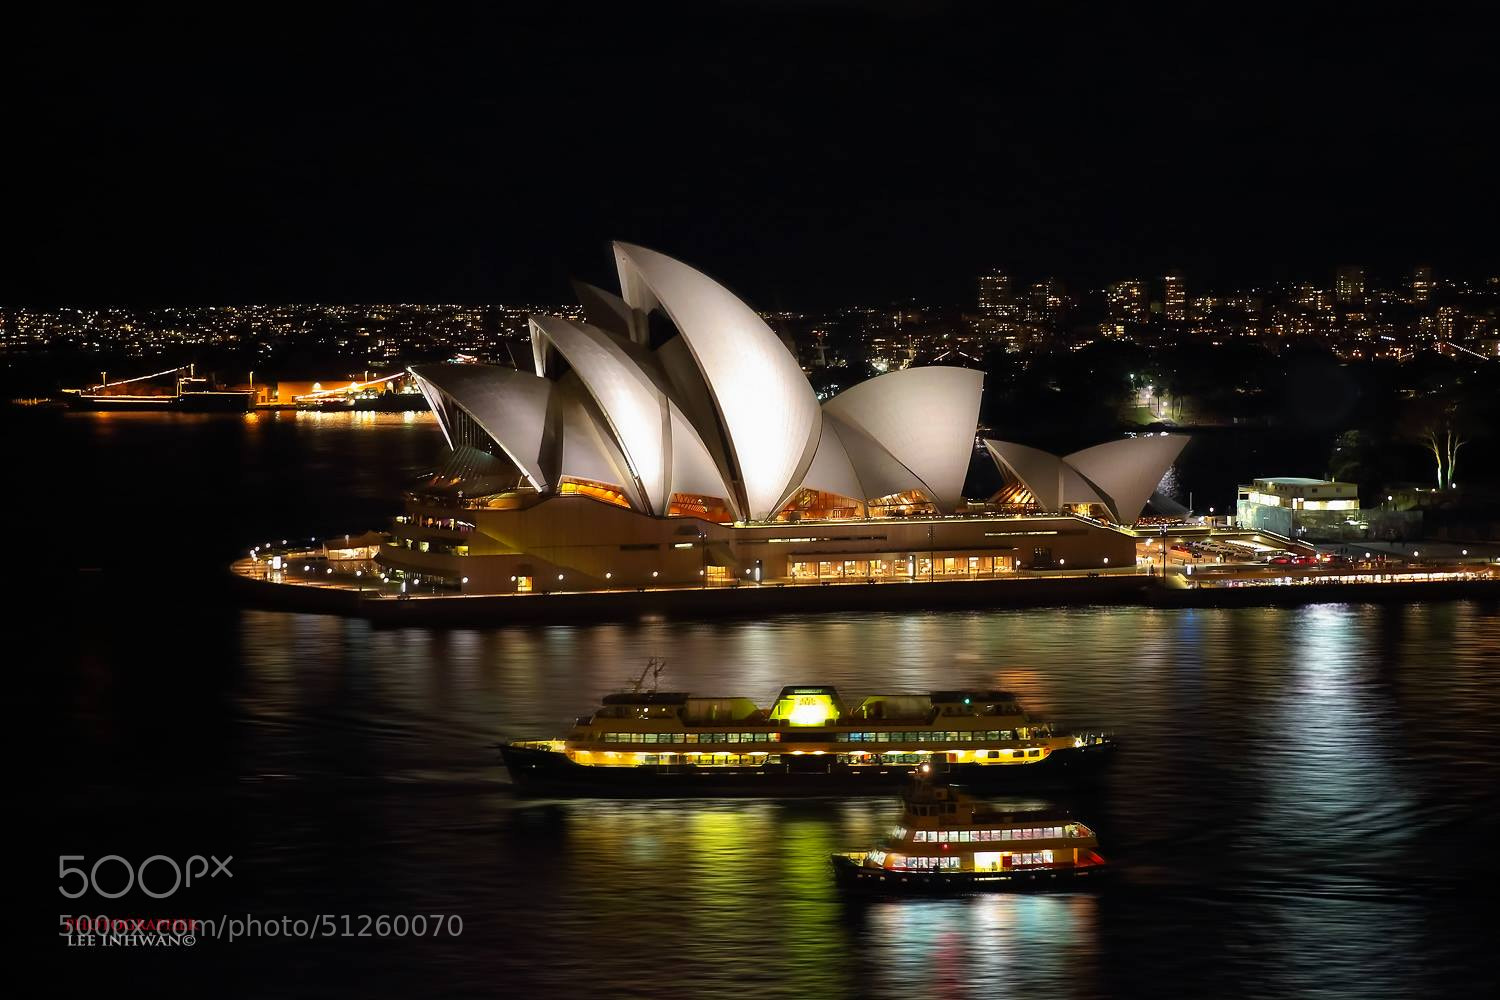 Photograph Hello~ Sydney! by LEE INHWAN on 500px